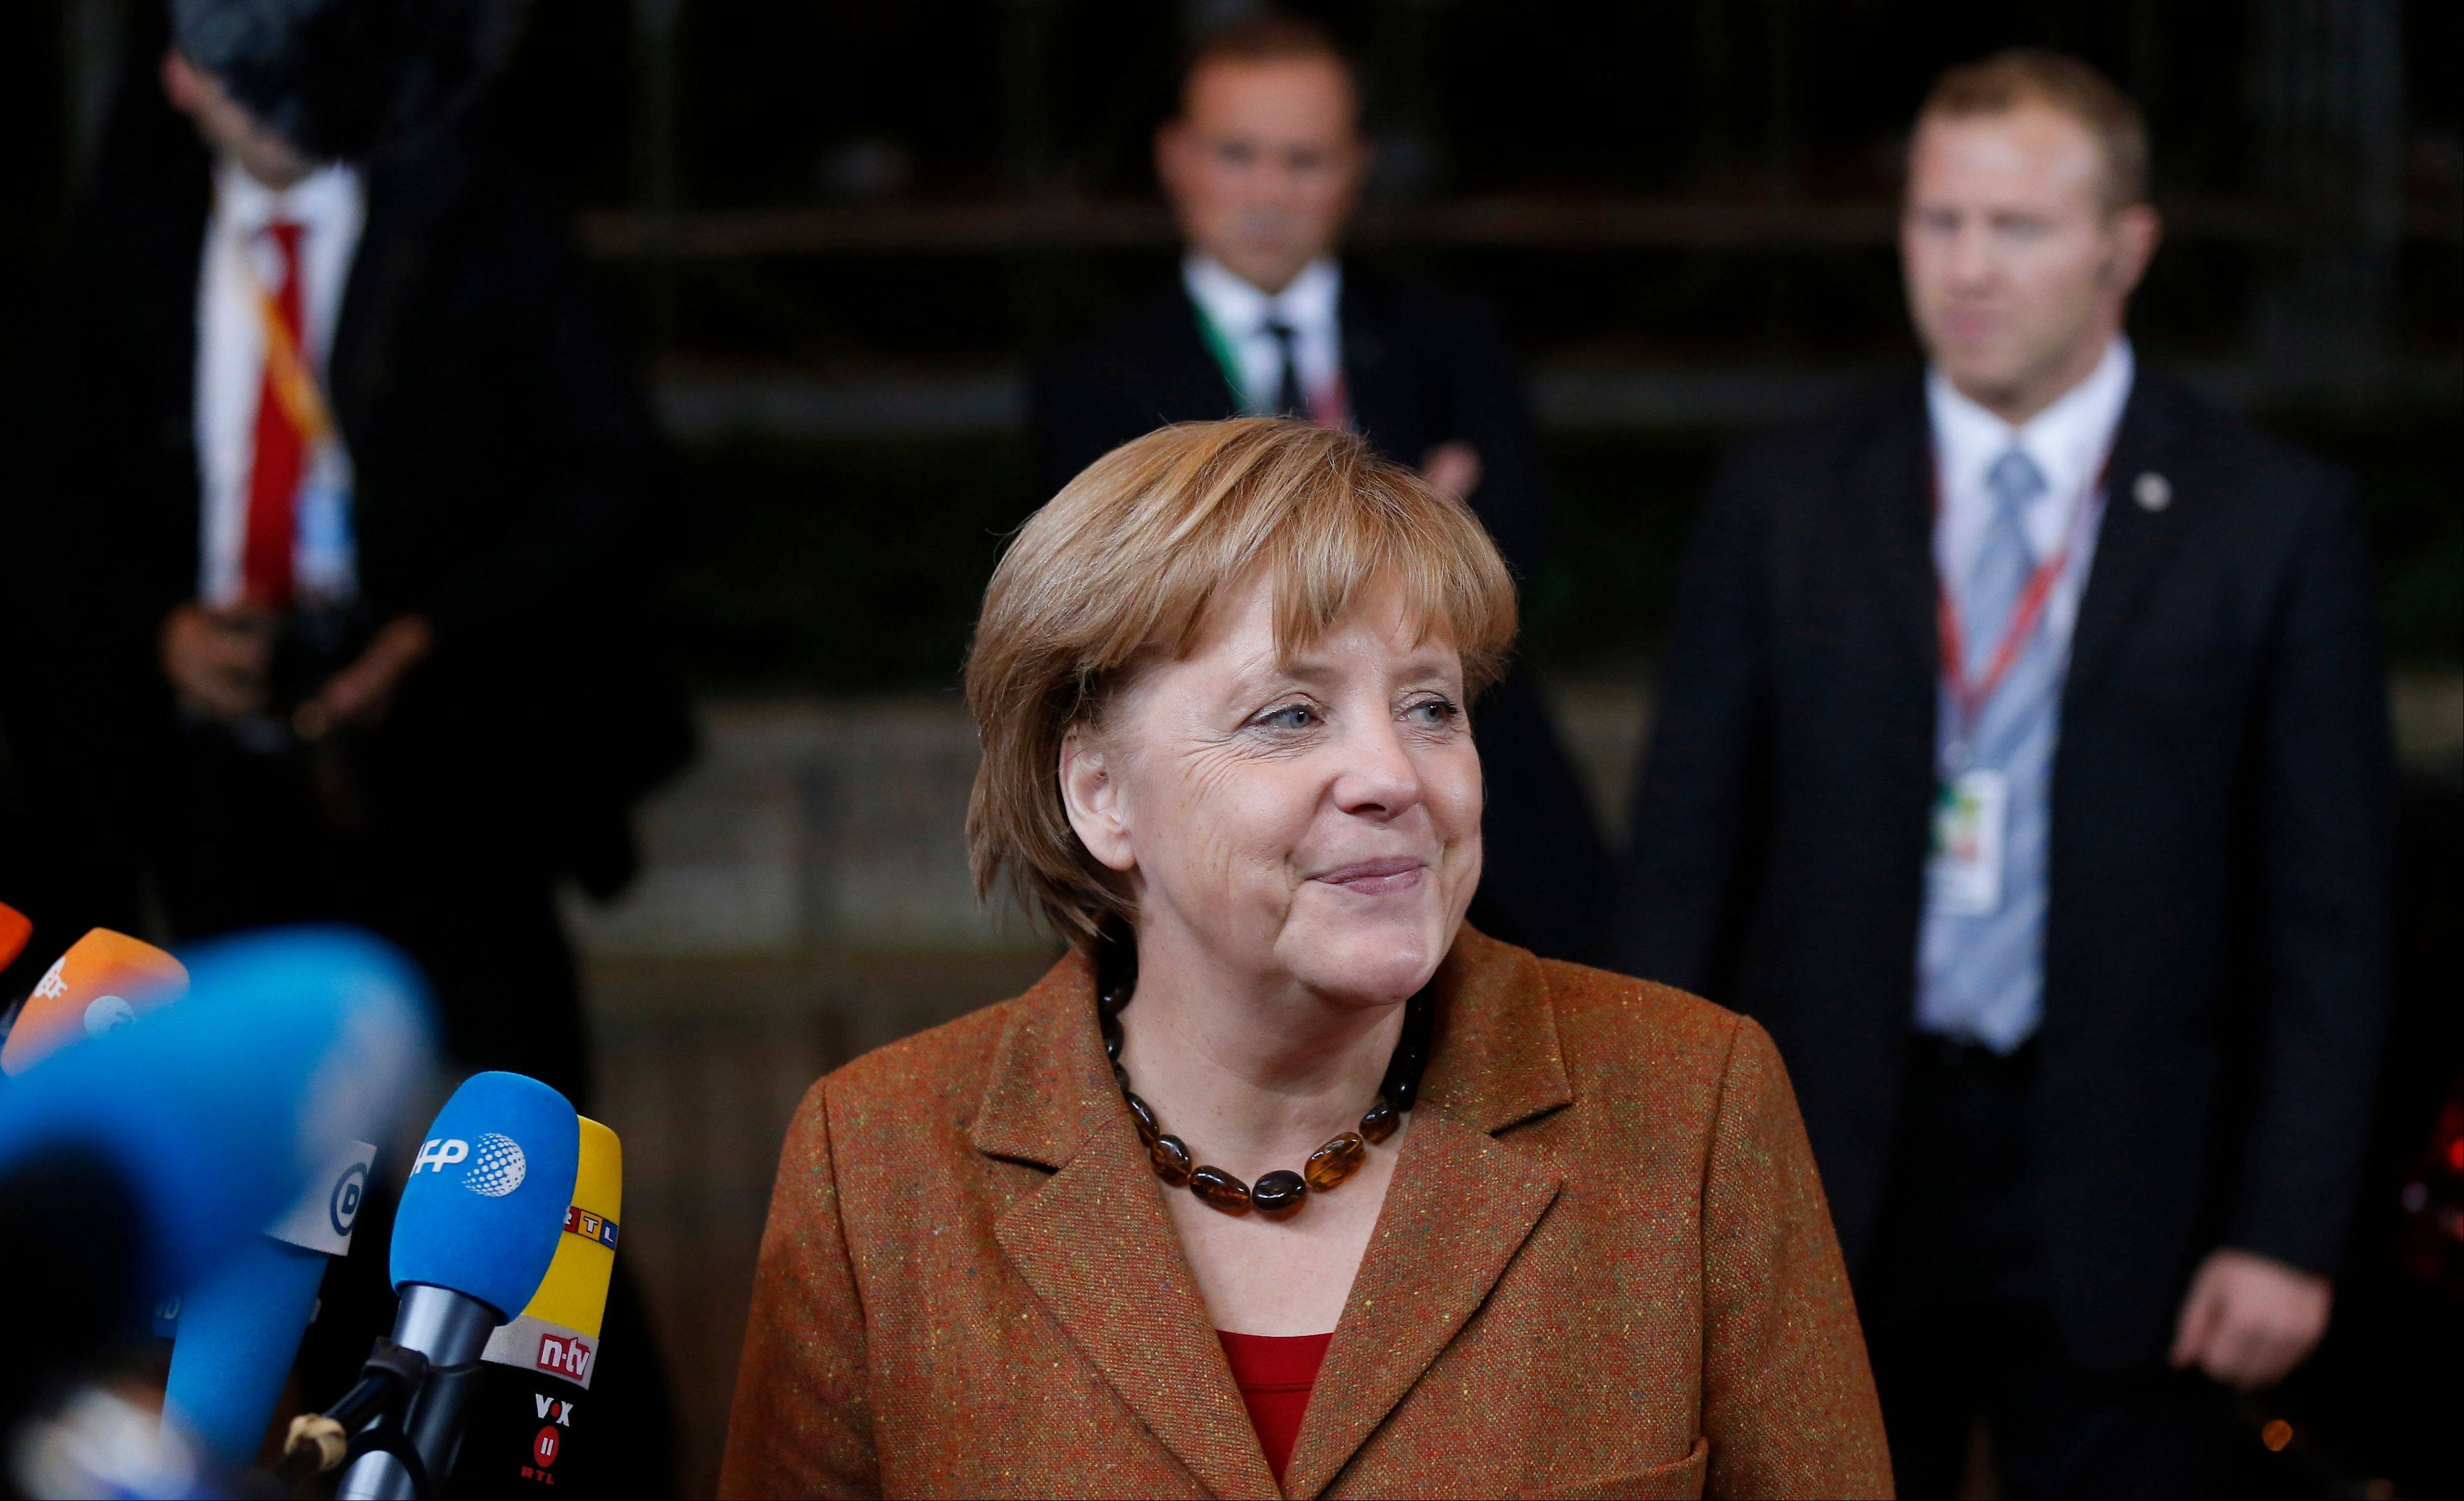 German Chancellor Angela Merkel, center, speaks with the media as she arrives for an EU summit at the EU Council building in Brussels on Thursday. EU leaders begin what is expected to be a marathon summit on the budget for the years 2014-2020. The meeting could last through Saturday and break up with no result and lots of finger-pointing.